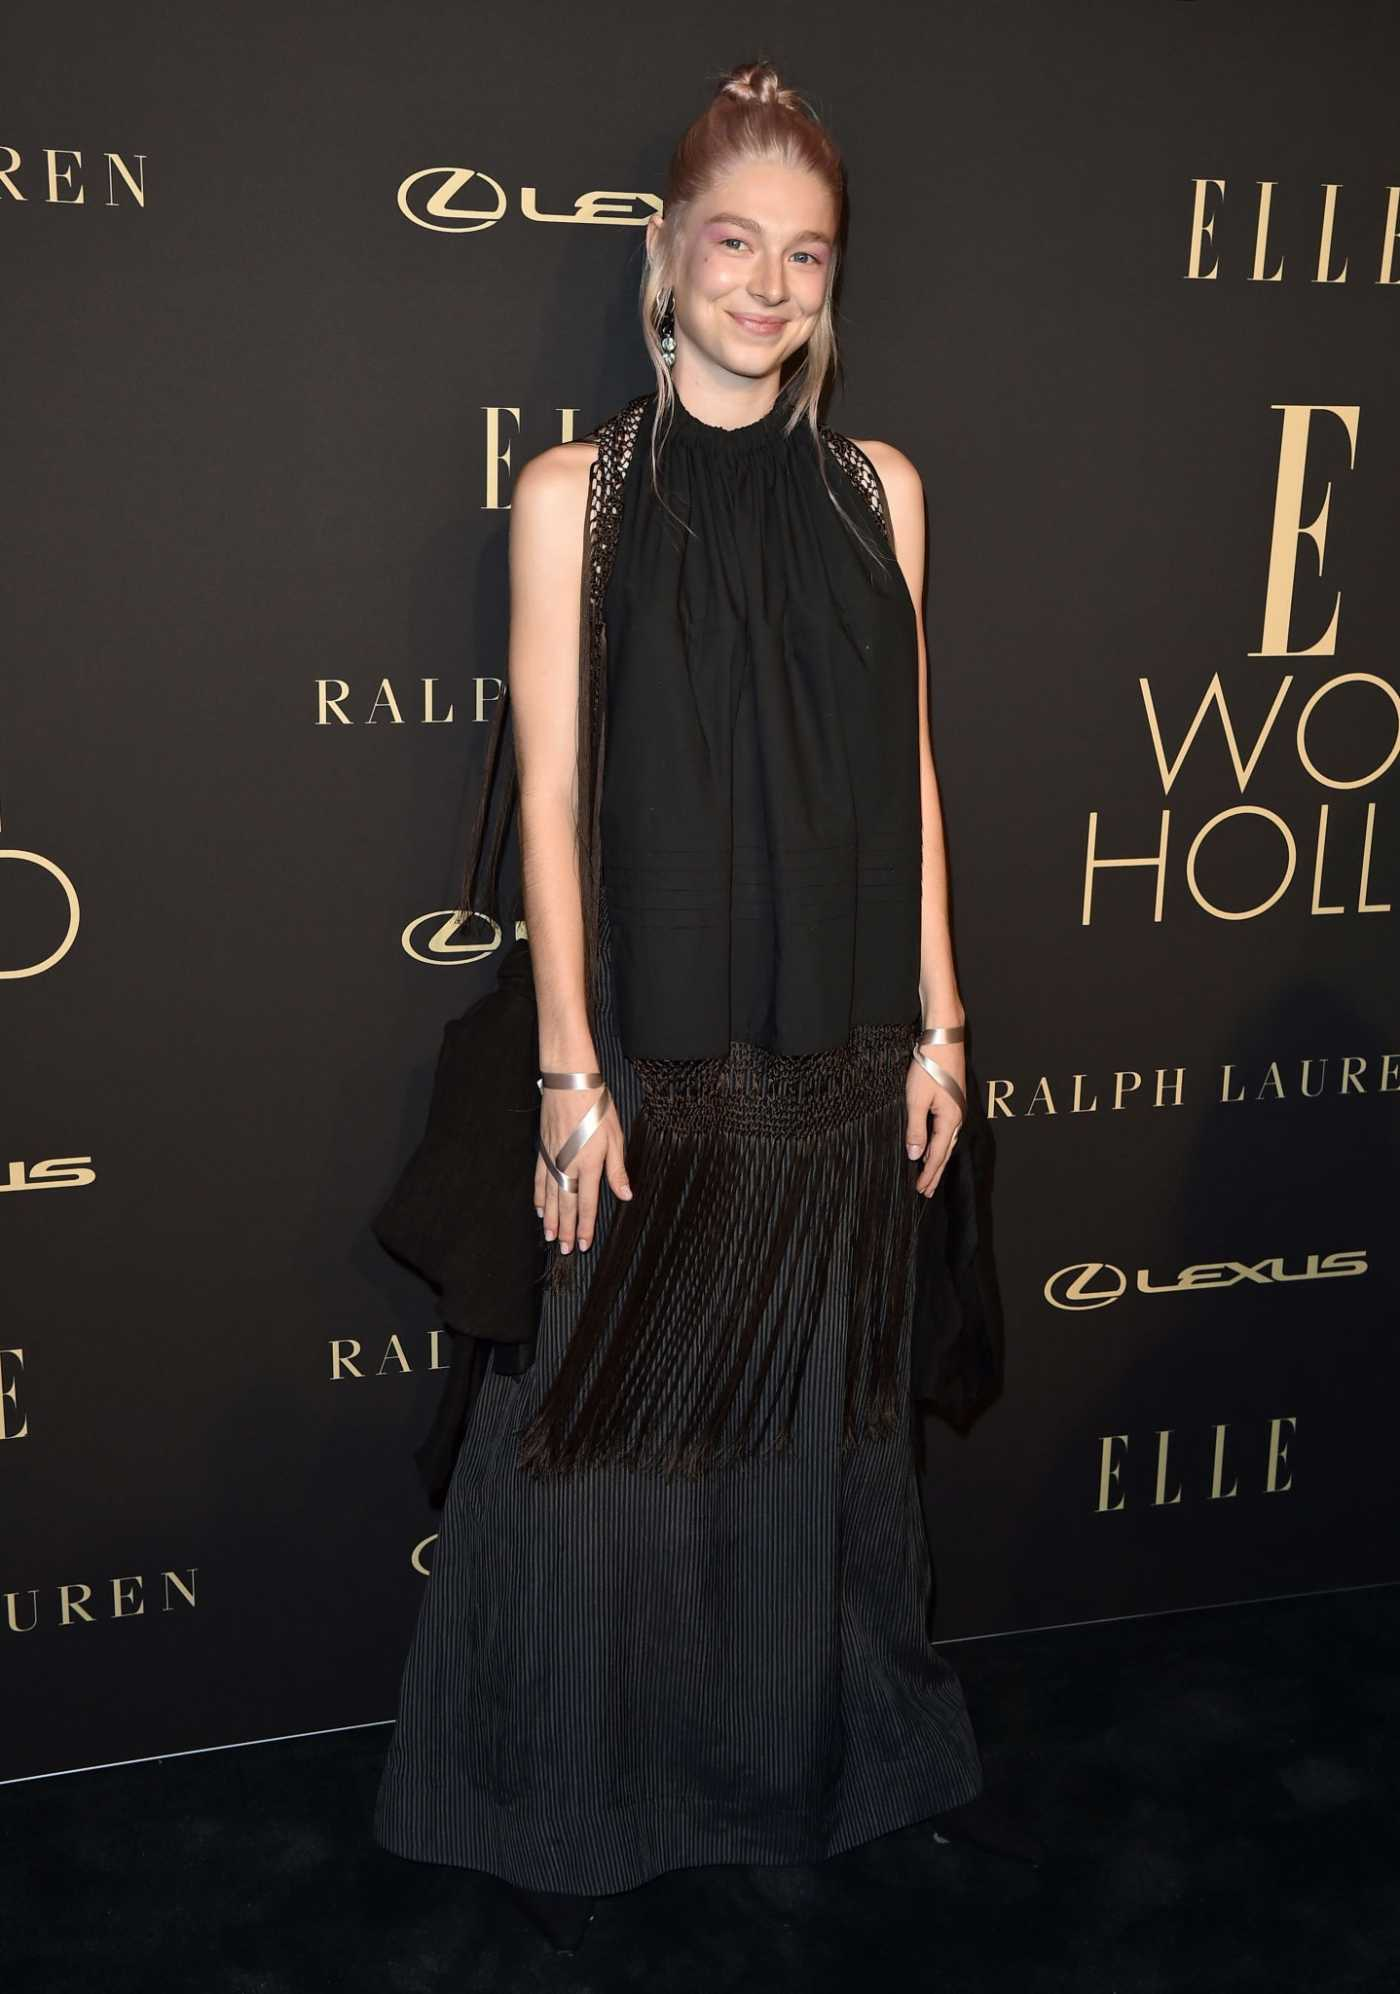 Hunter Schafer Attends the 26th Annual Elle Women in Hollywood Celebration in Beverly Hills 10/14/2019